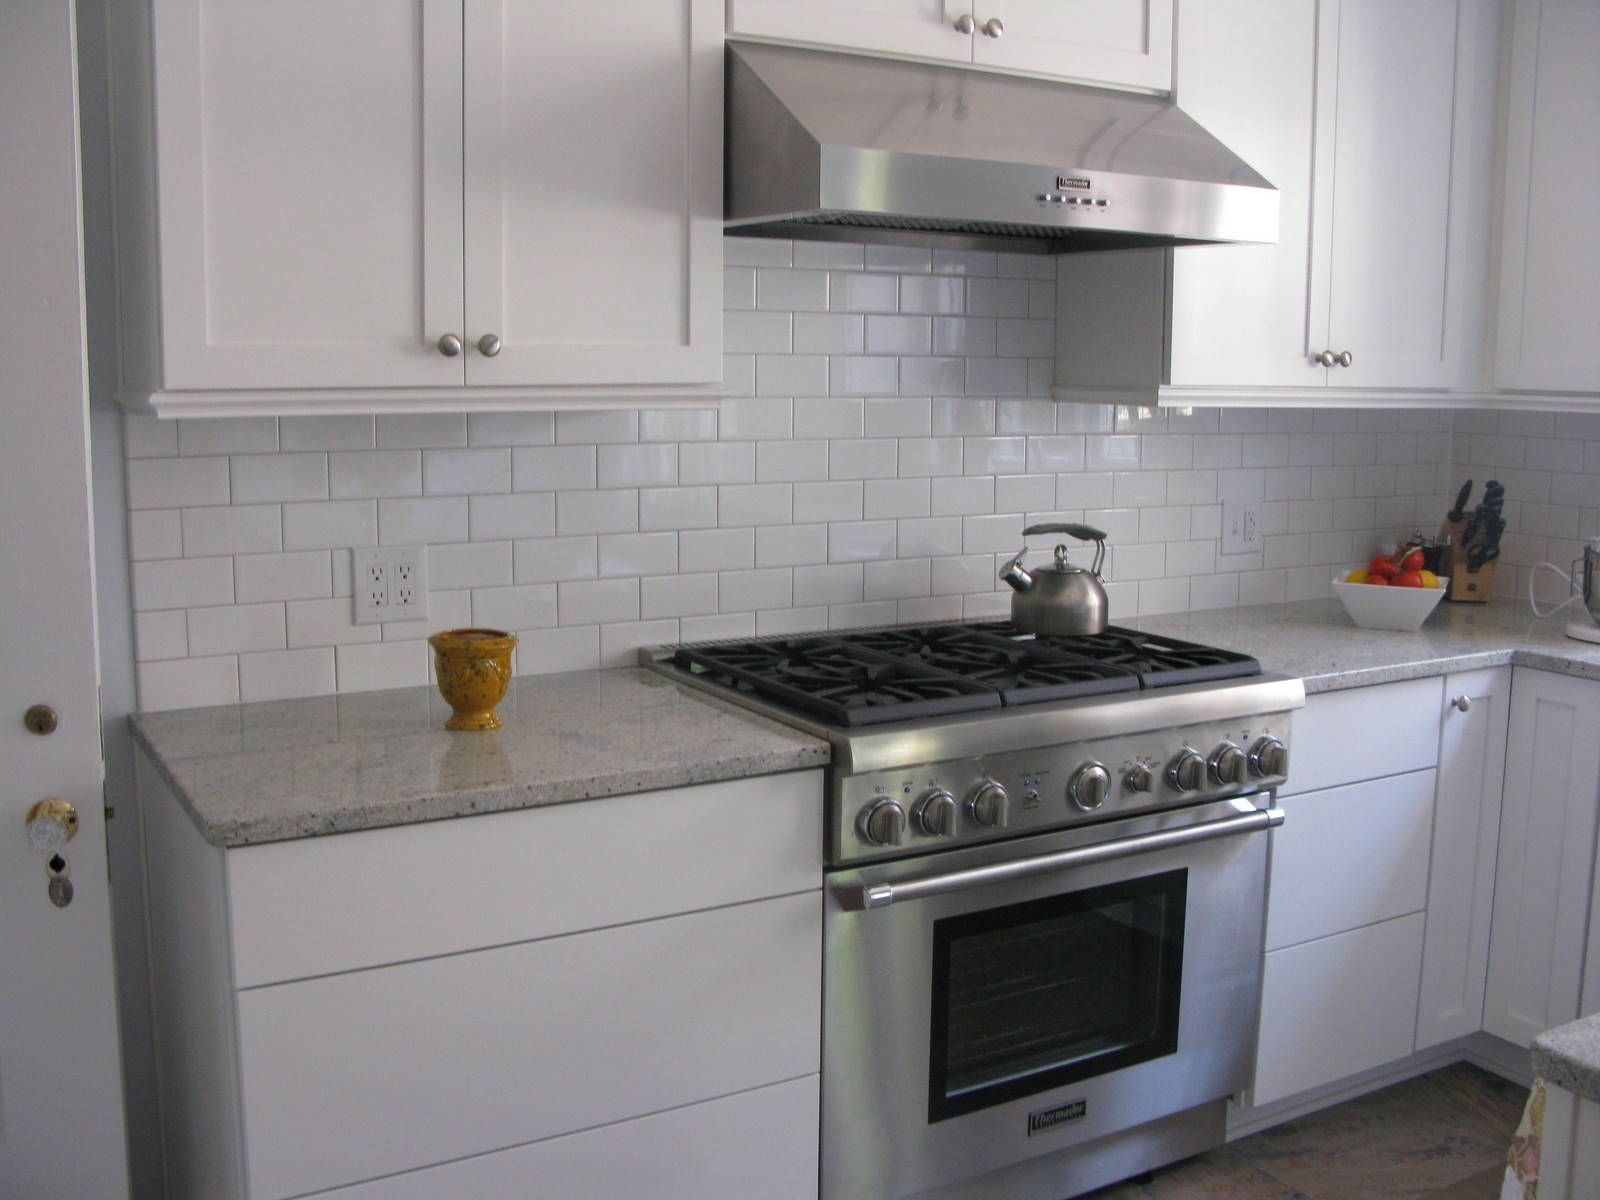 white kitchen subway tile stainless steel vent hood - White Kitchen With Subway Tile Backsplas